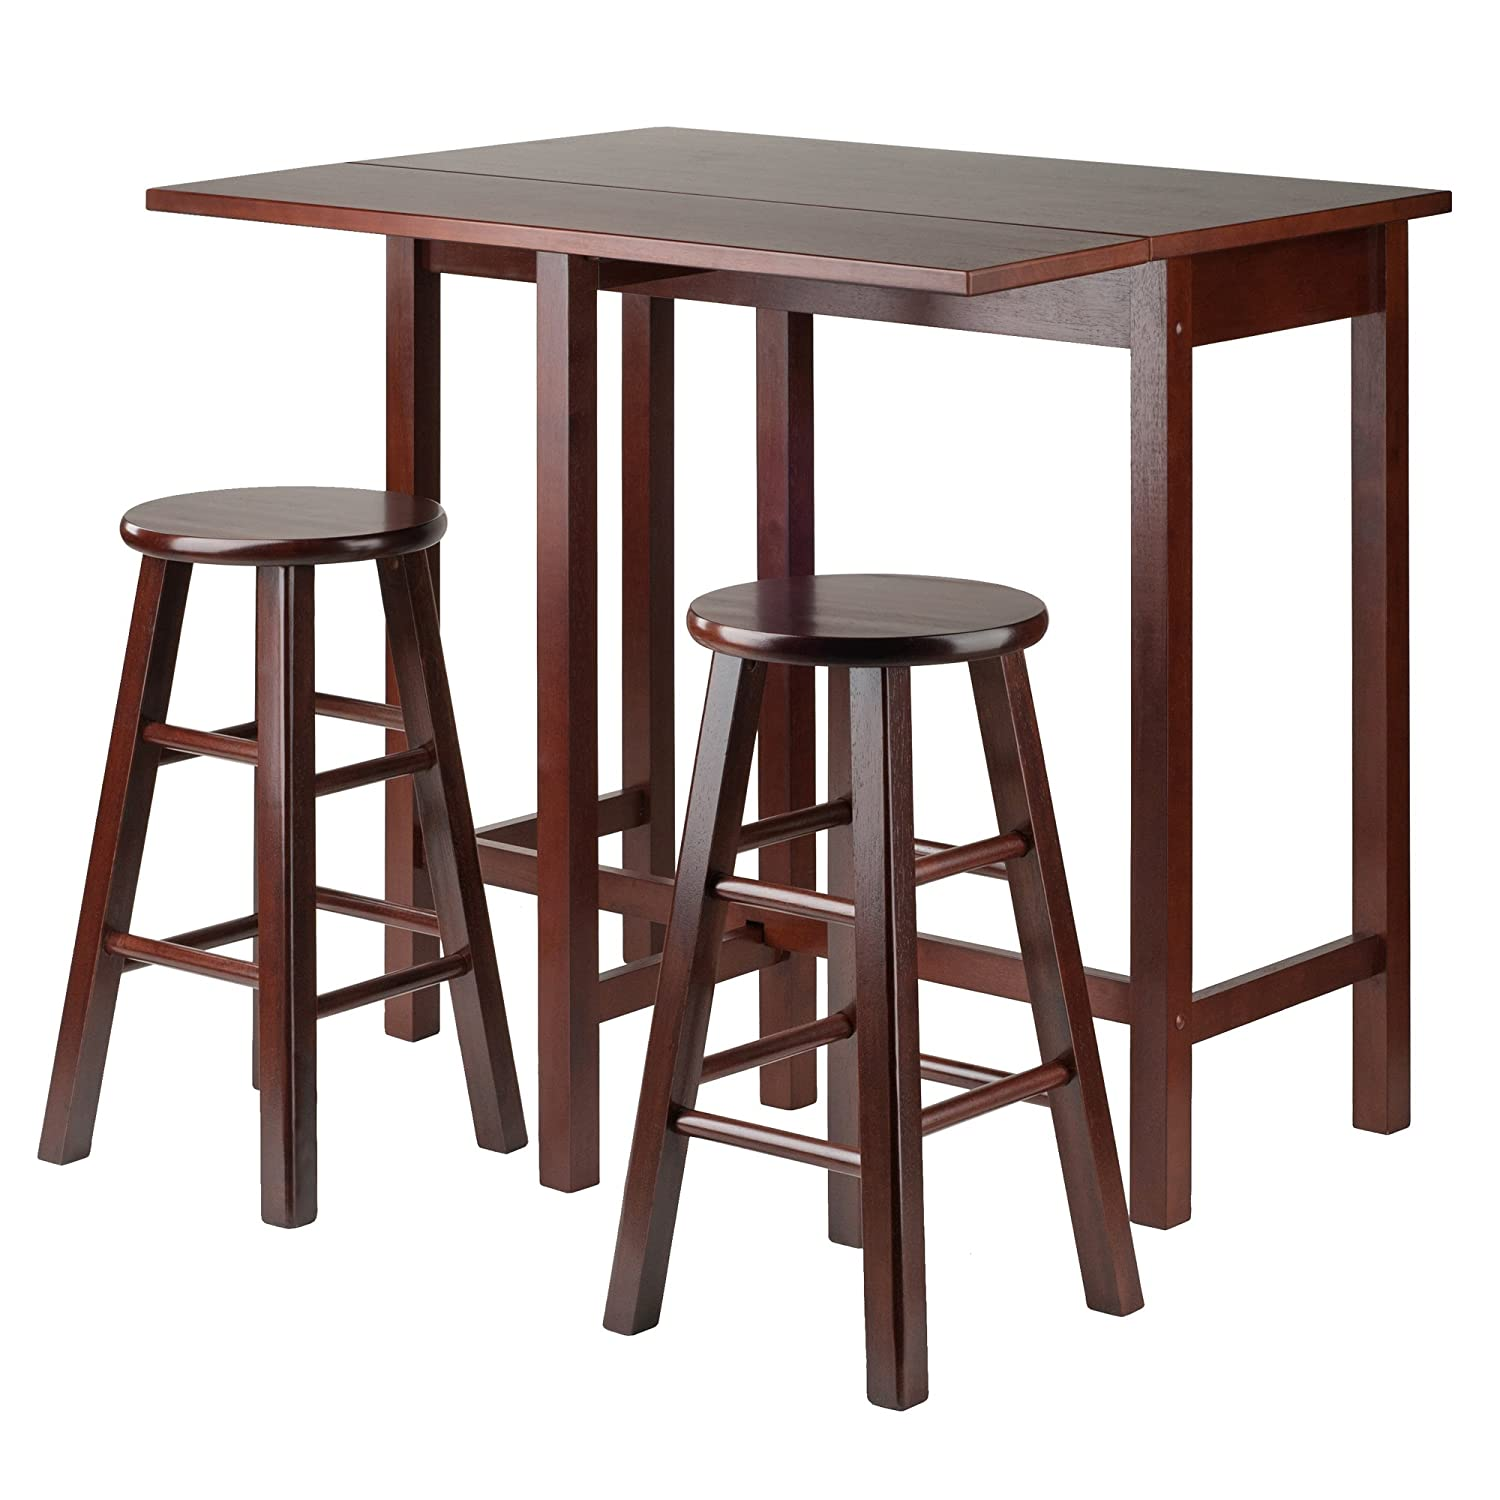 Winsome Wood Lynnwood Drop Leaf Island Table with 2 Square Legs Stool Walnut, 3-Piece Winsome Trading Inc. 94394